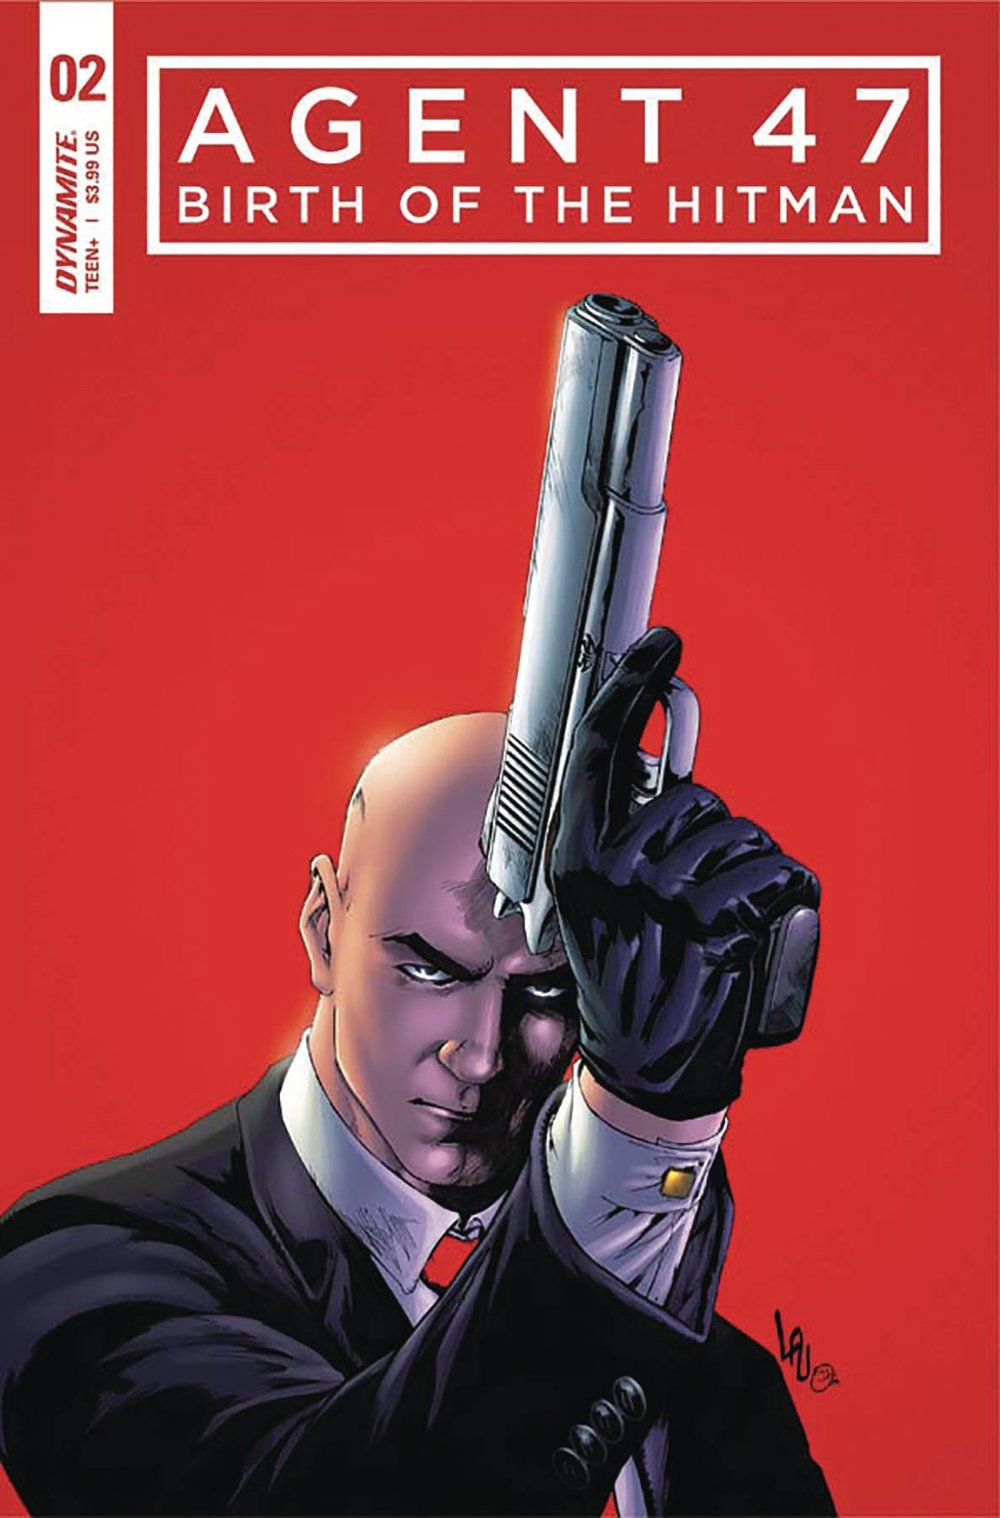 AGENT 47 BIRTH OF HITMAN 2 CVR A LAU.jpg